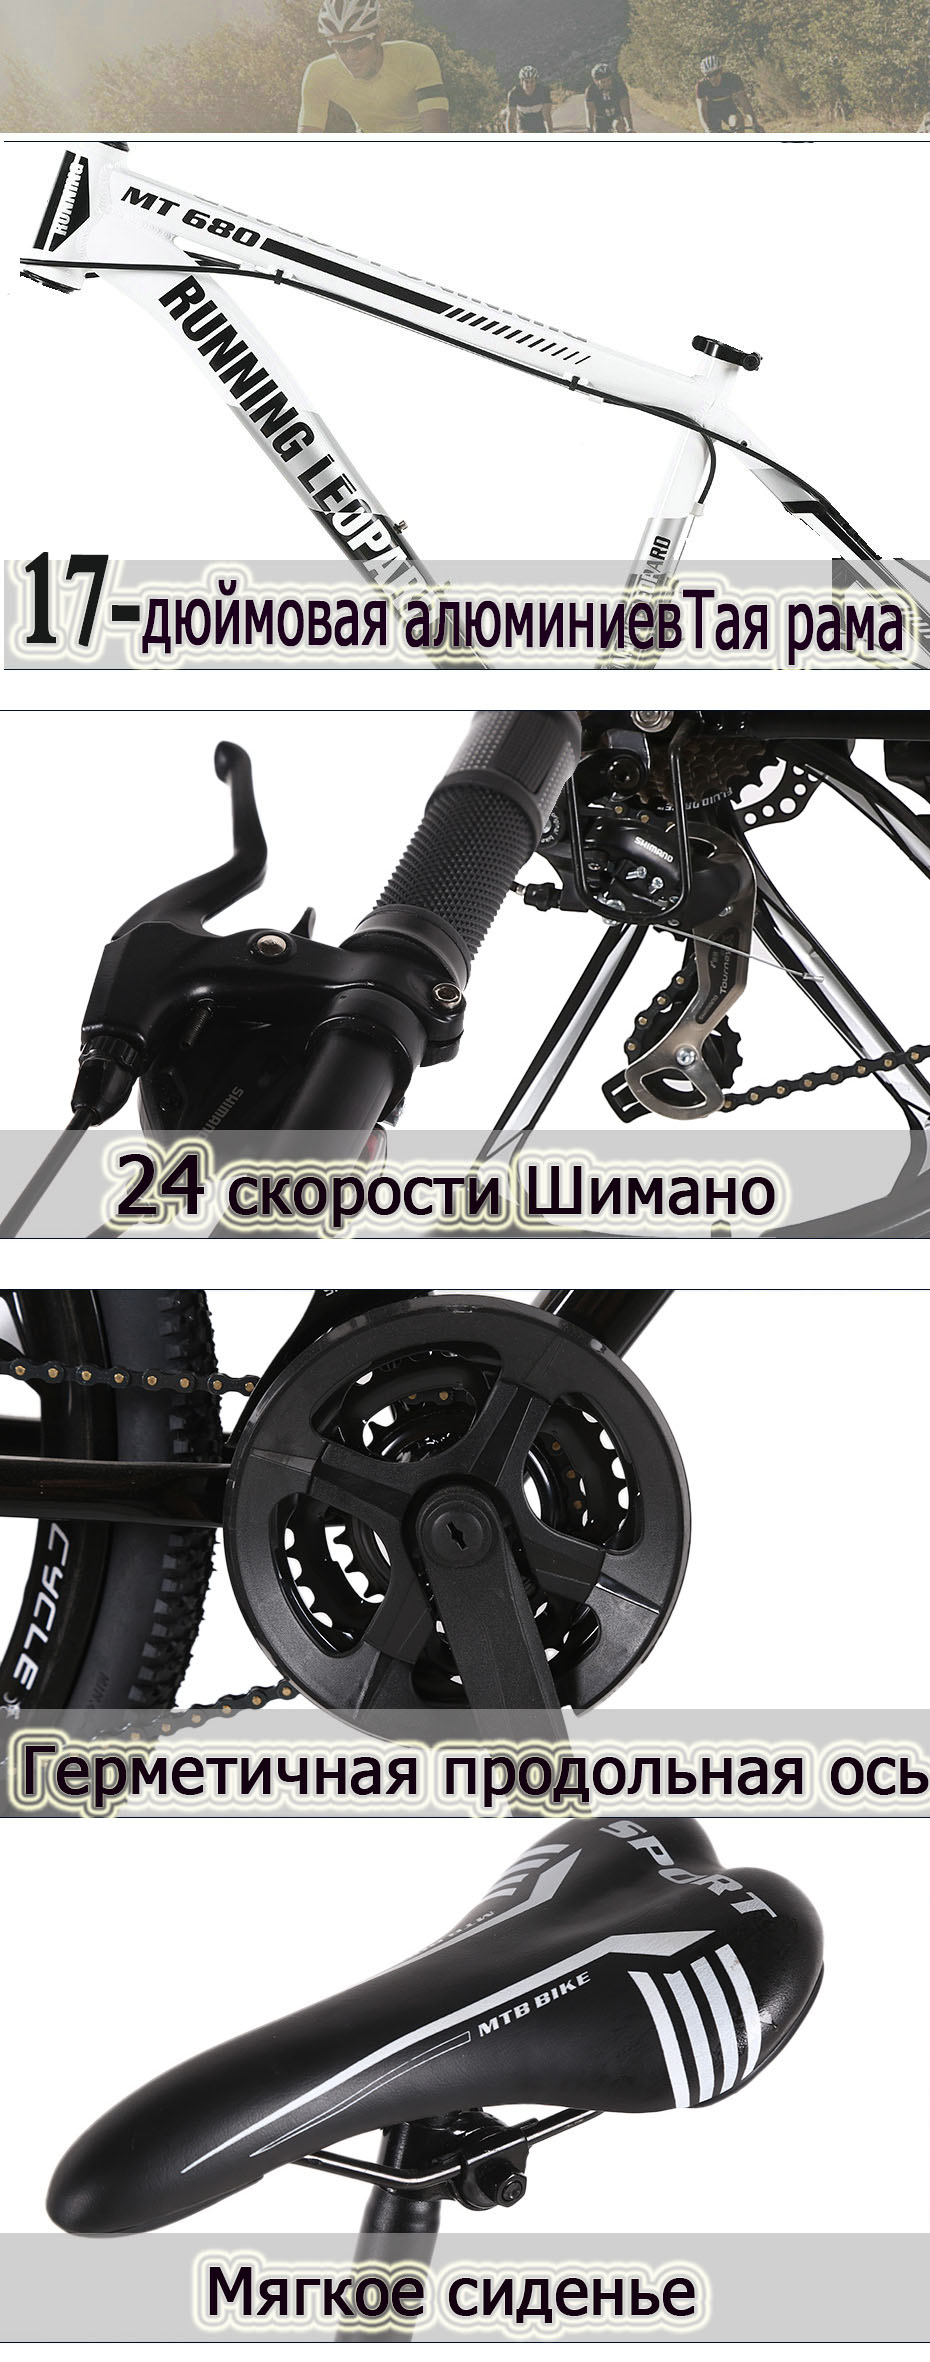 HTB1R1piXznuK1RkSmFPq6AuzFXag Running Leopard mountain bike bicycle 21/24 speed mountain bike suitable for  for men and women students vehicle adultb